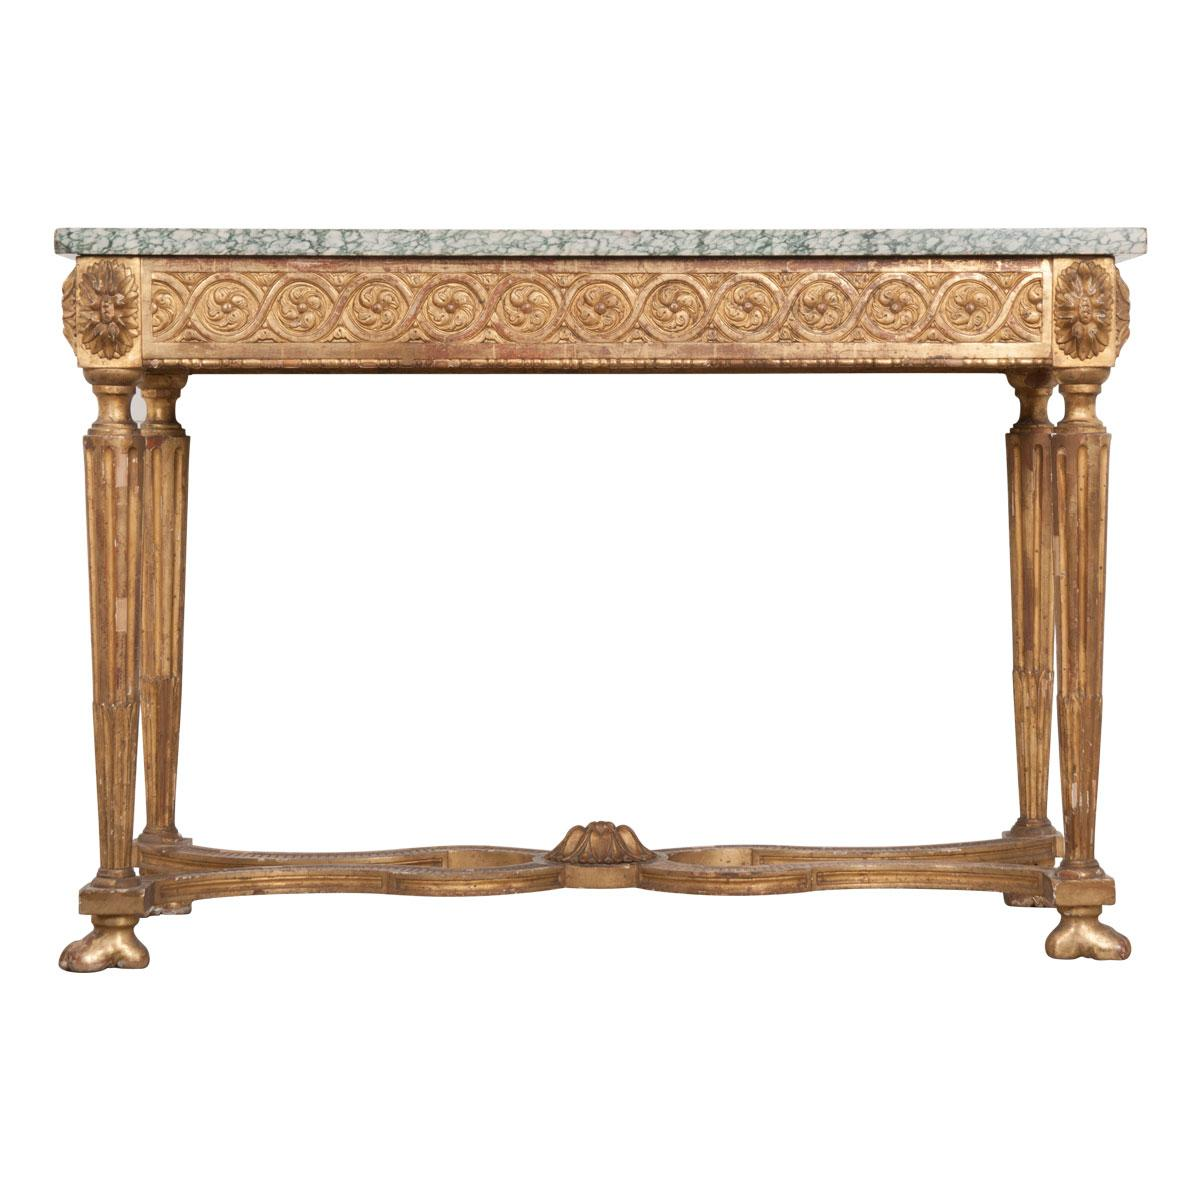 French, 18th Century Period Louis XVI Gold Gilt Console